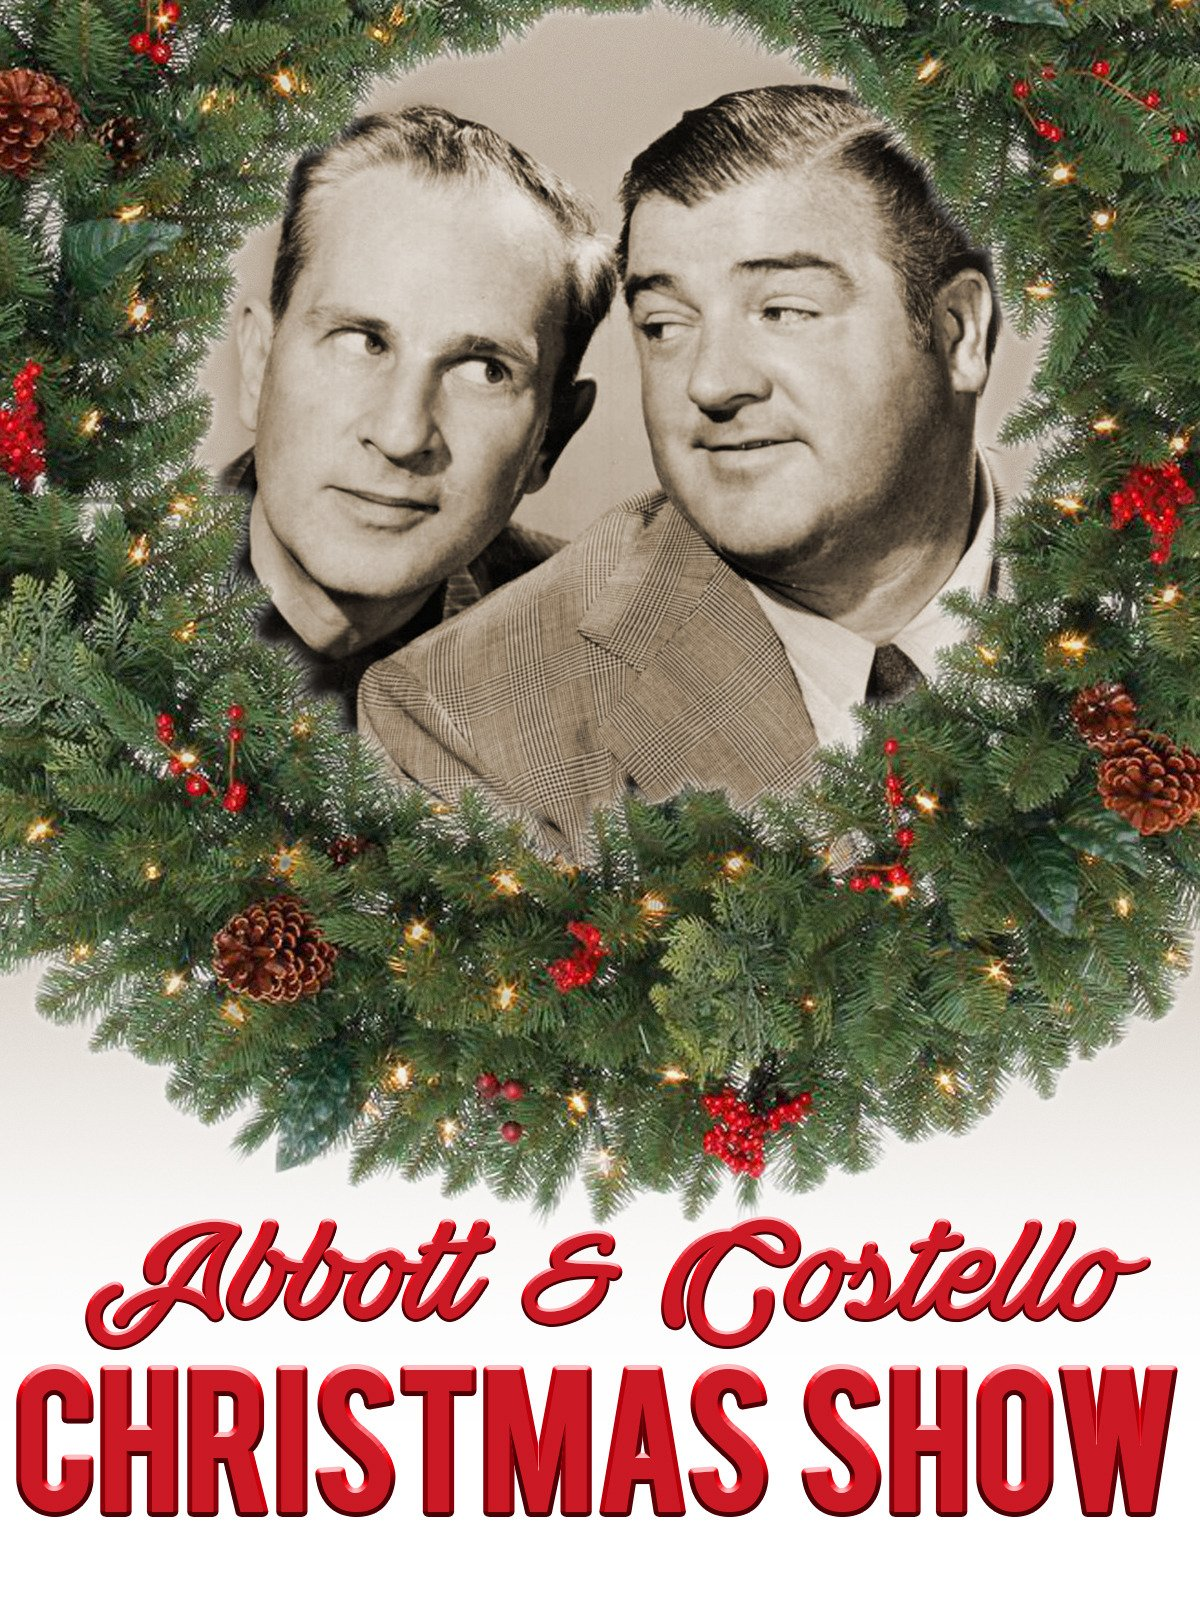 Abbott & Costello Christmas Show